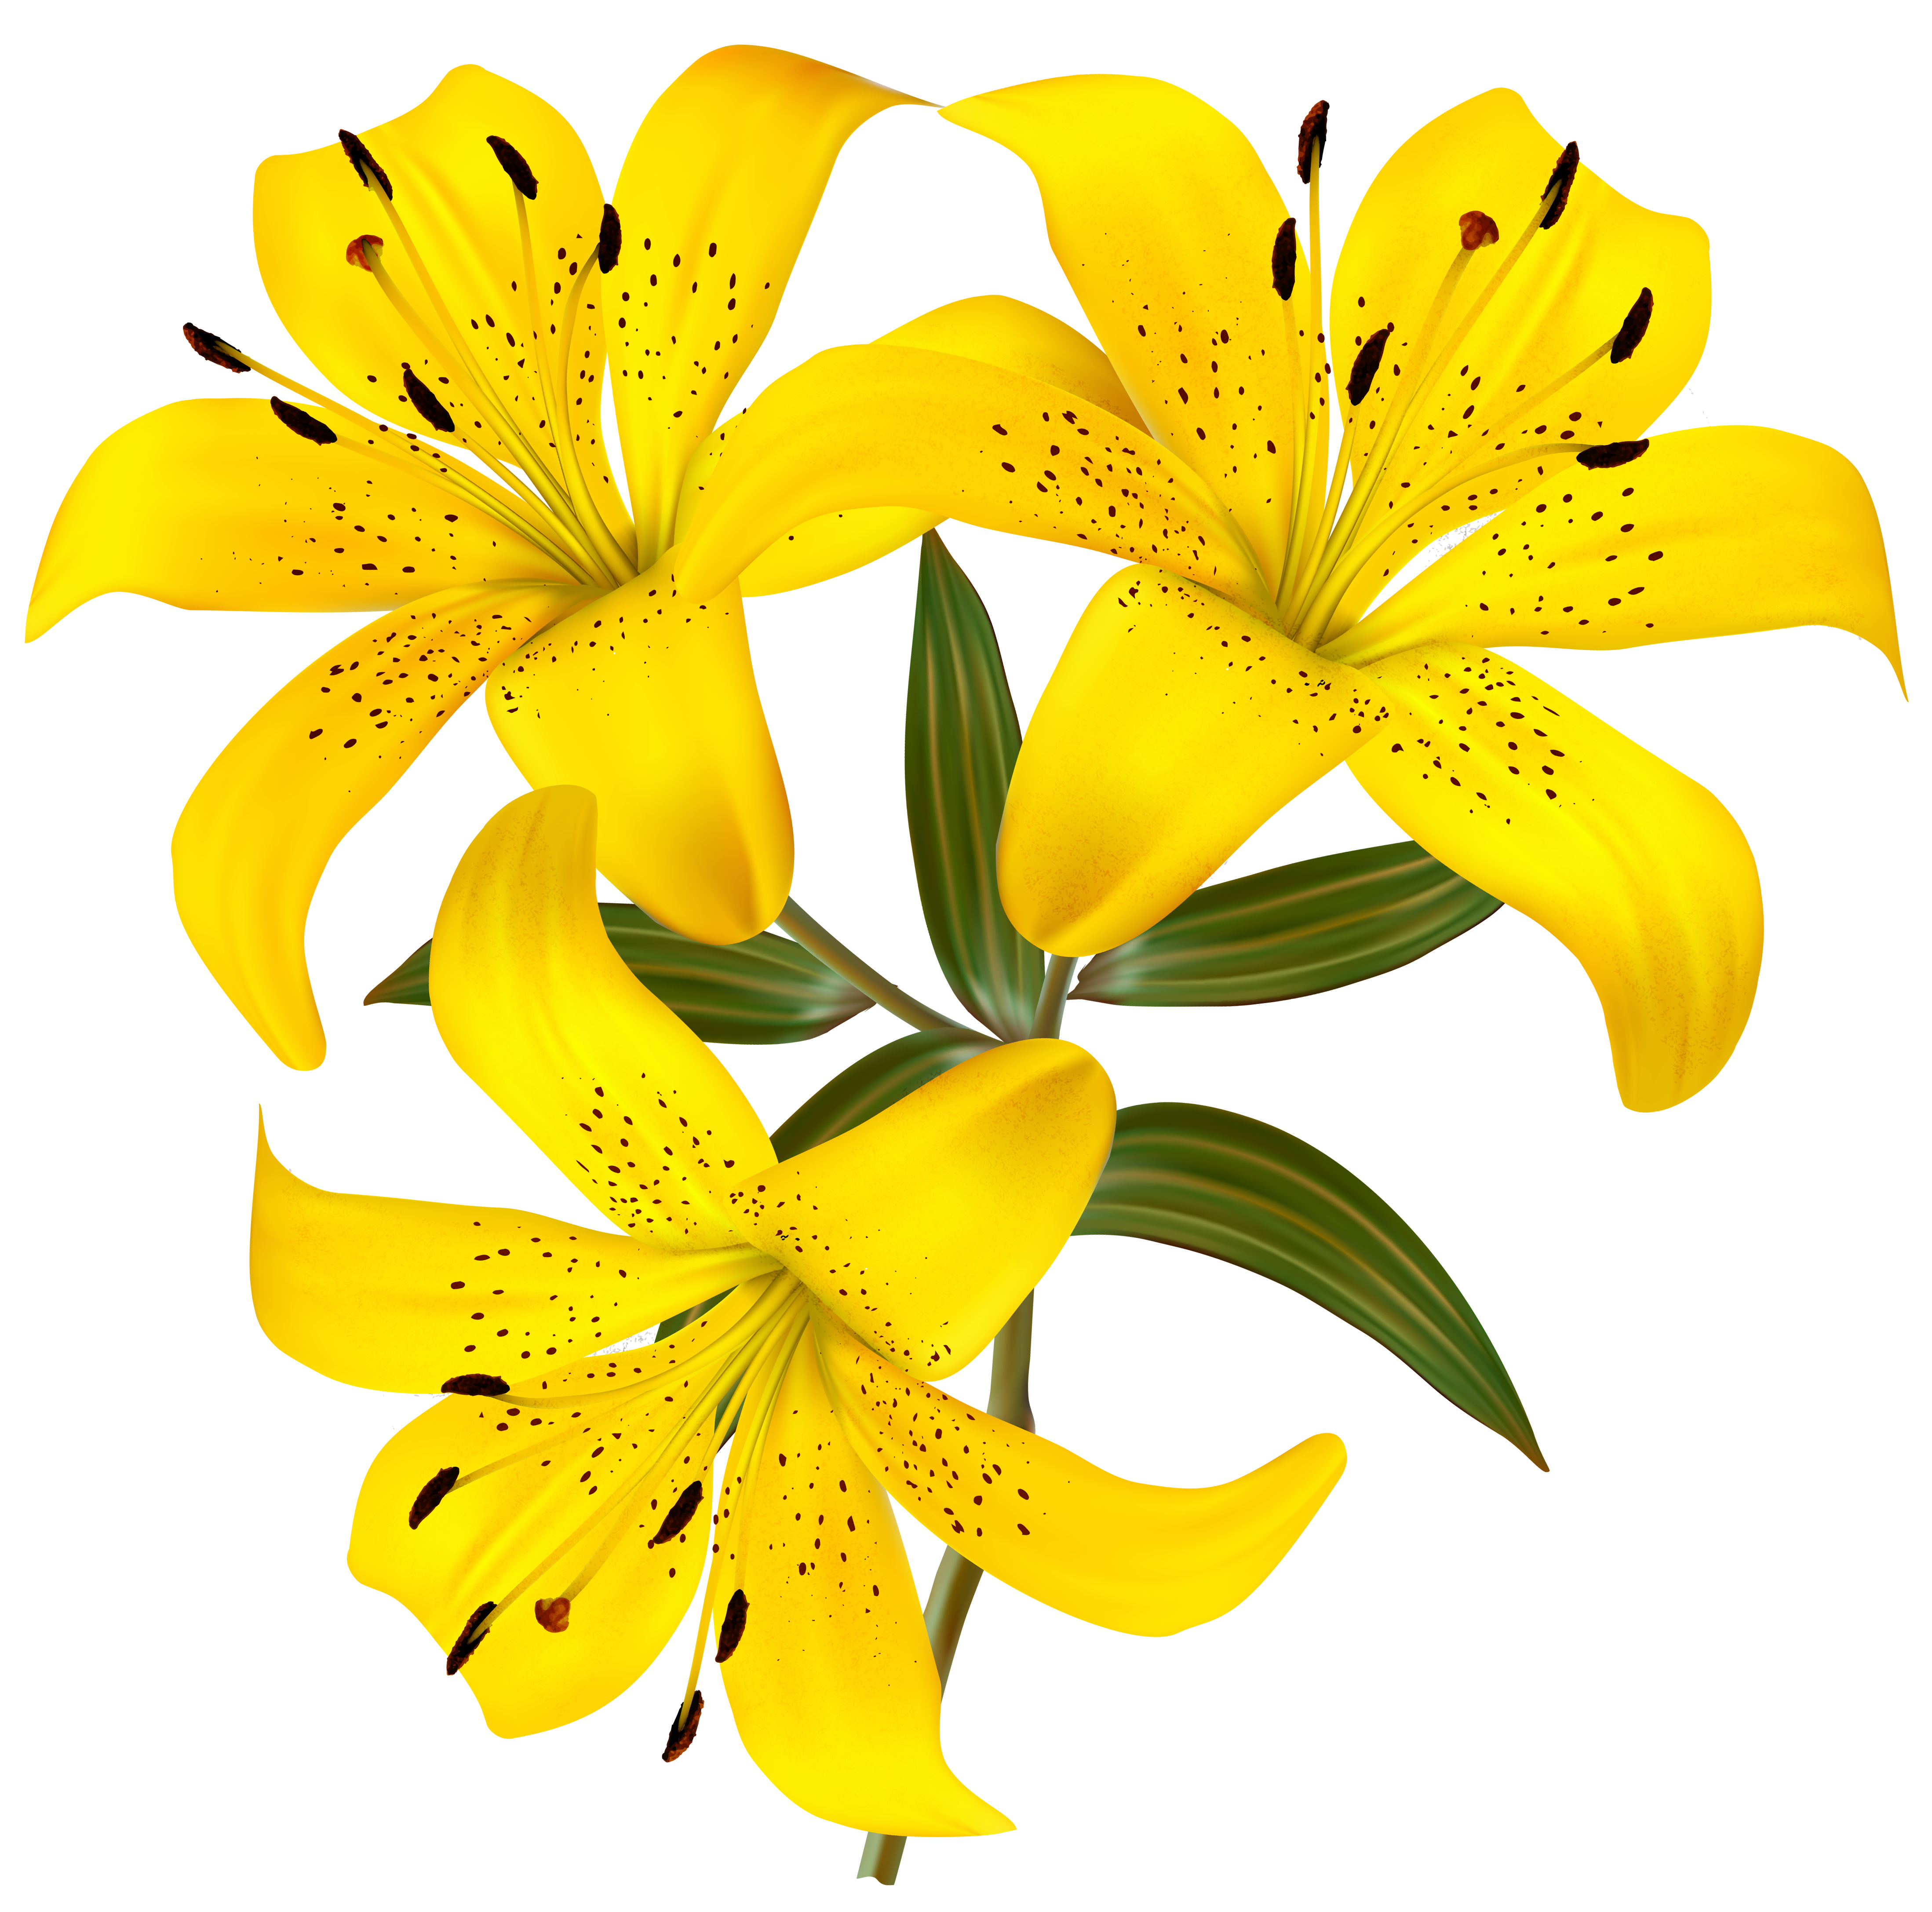 Yellow bell flower clipart banner royalty free Tiger Lily Clipart at GetDrawings.com | Free for personal use Tiger ... banner royalty free